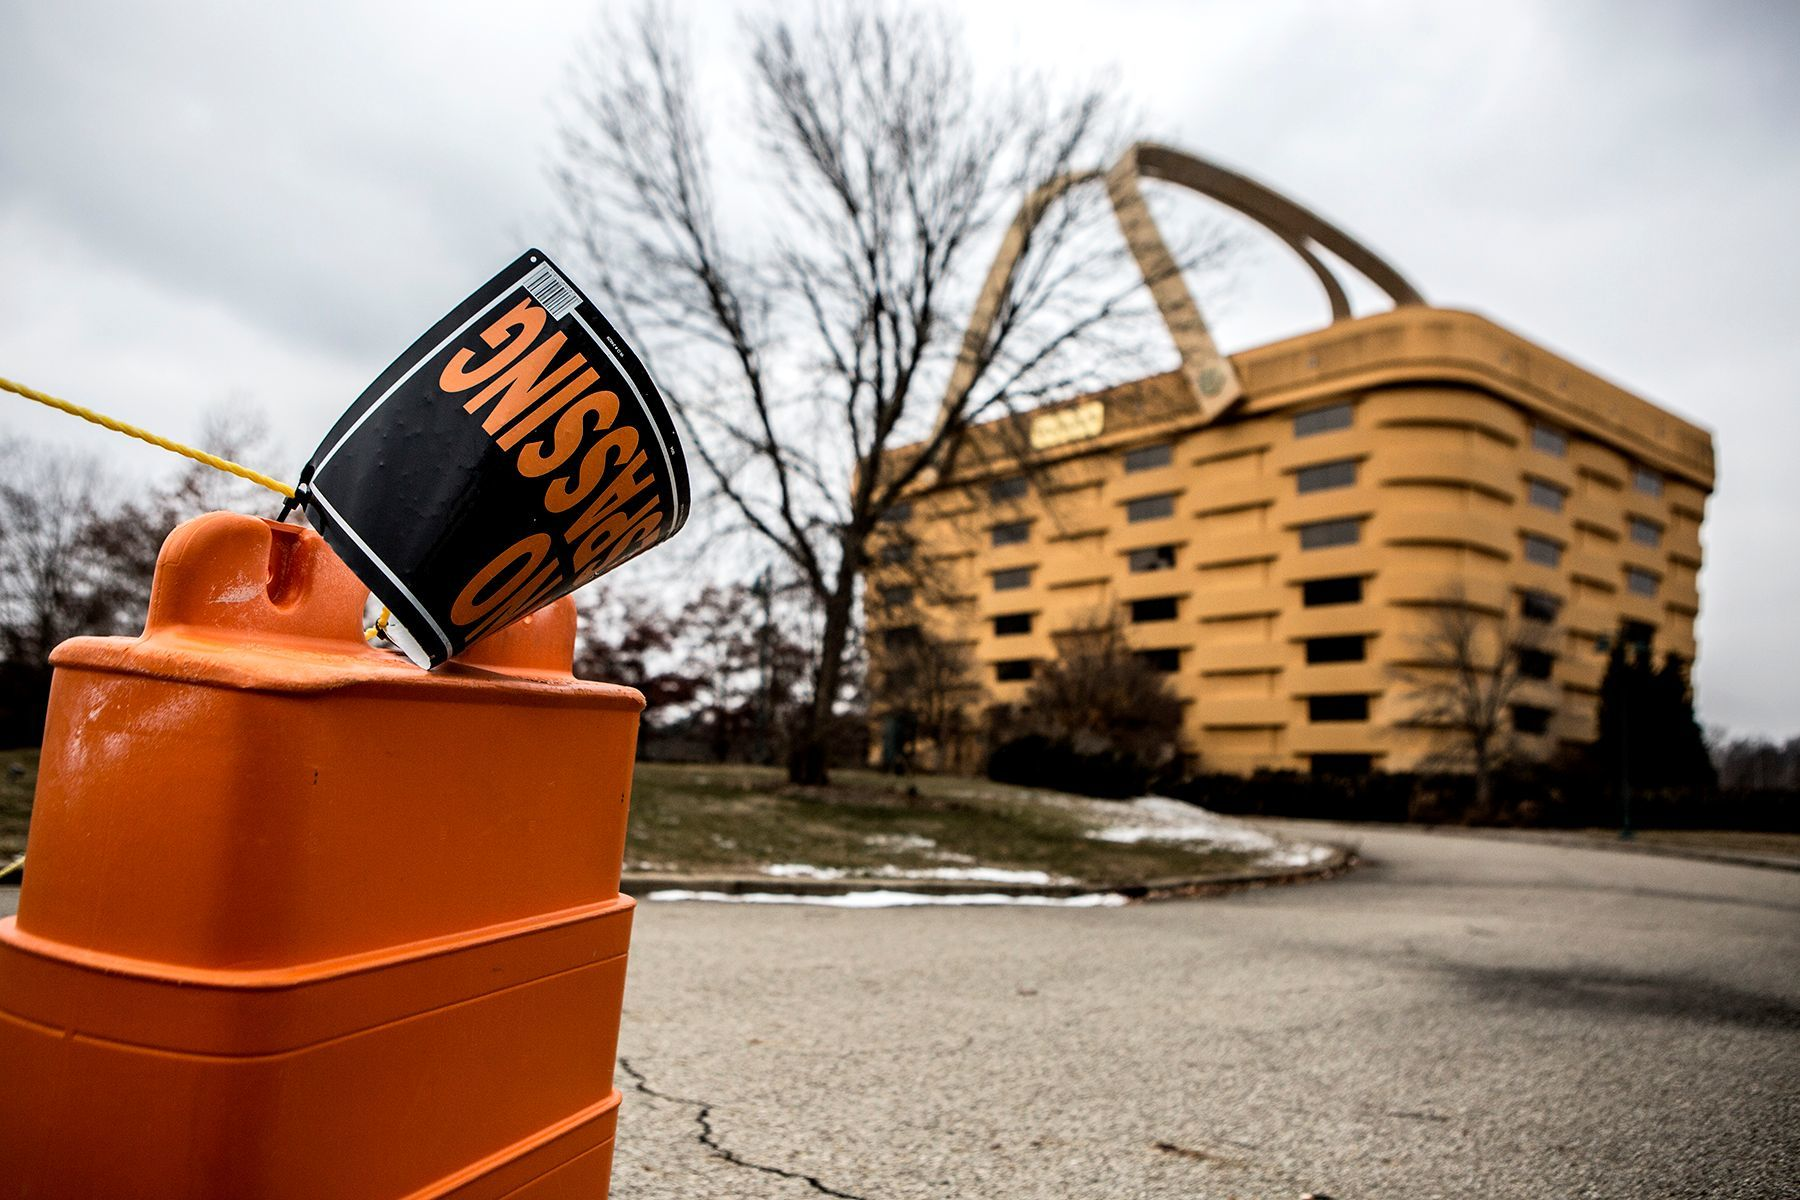 A no trespassing sign sits in front of the Longaberger Basket. The sale of the building has been finalized.